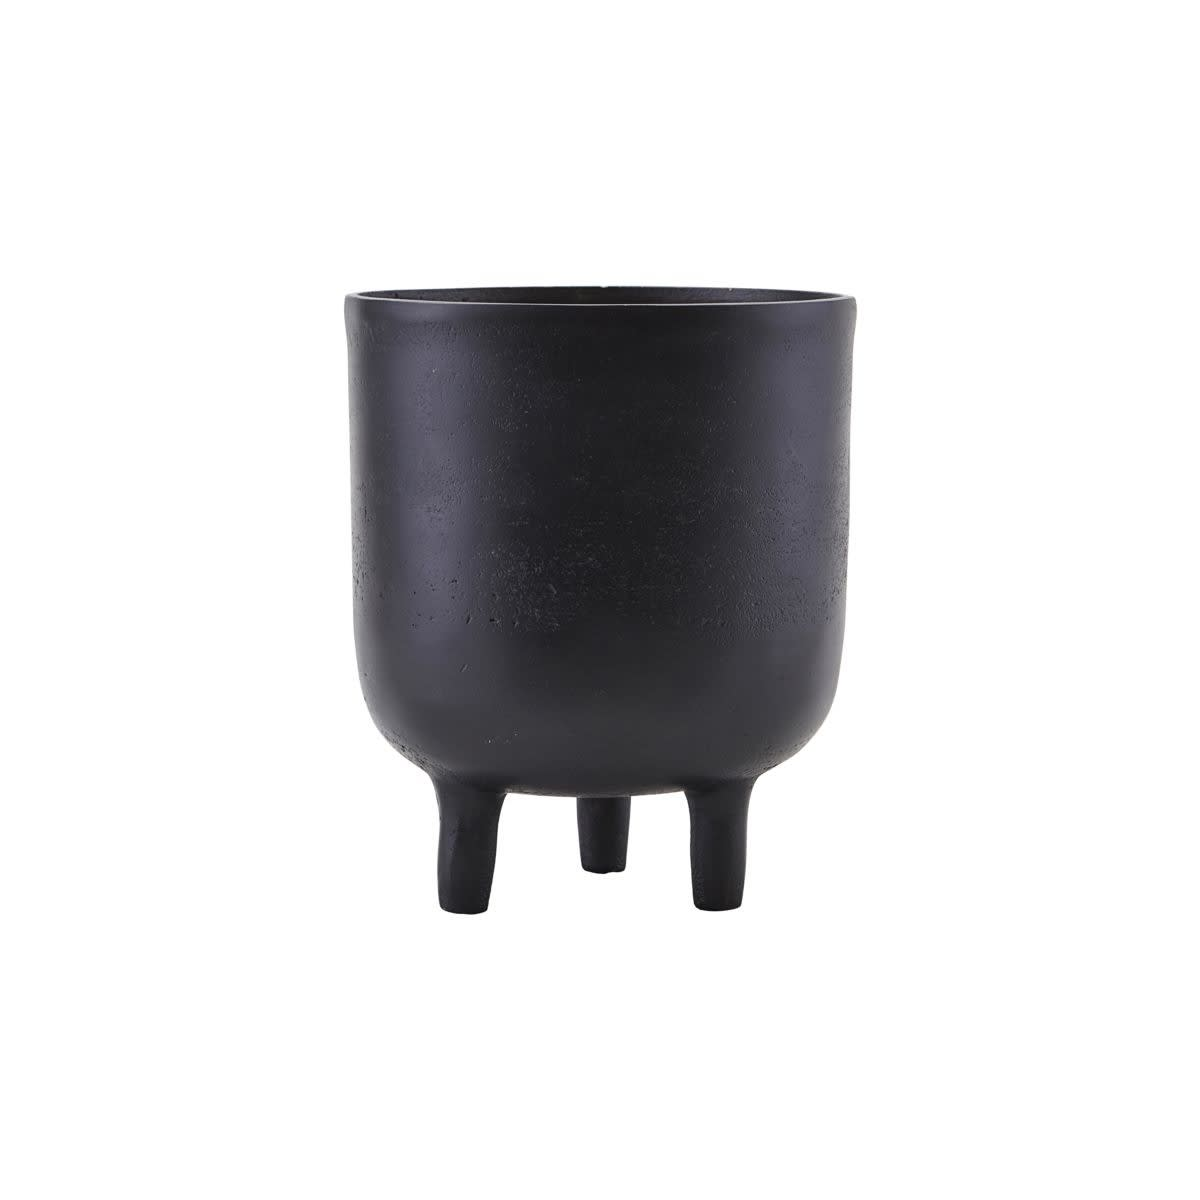 House Doctor Planter Jang Black Oxidized